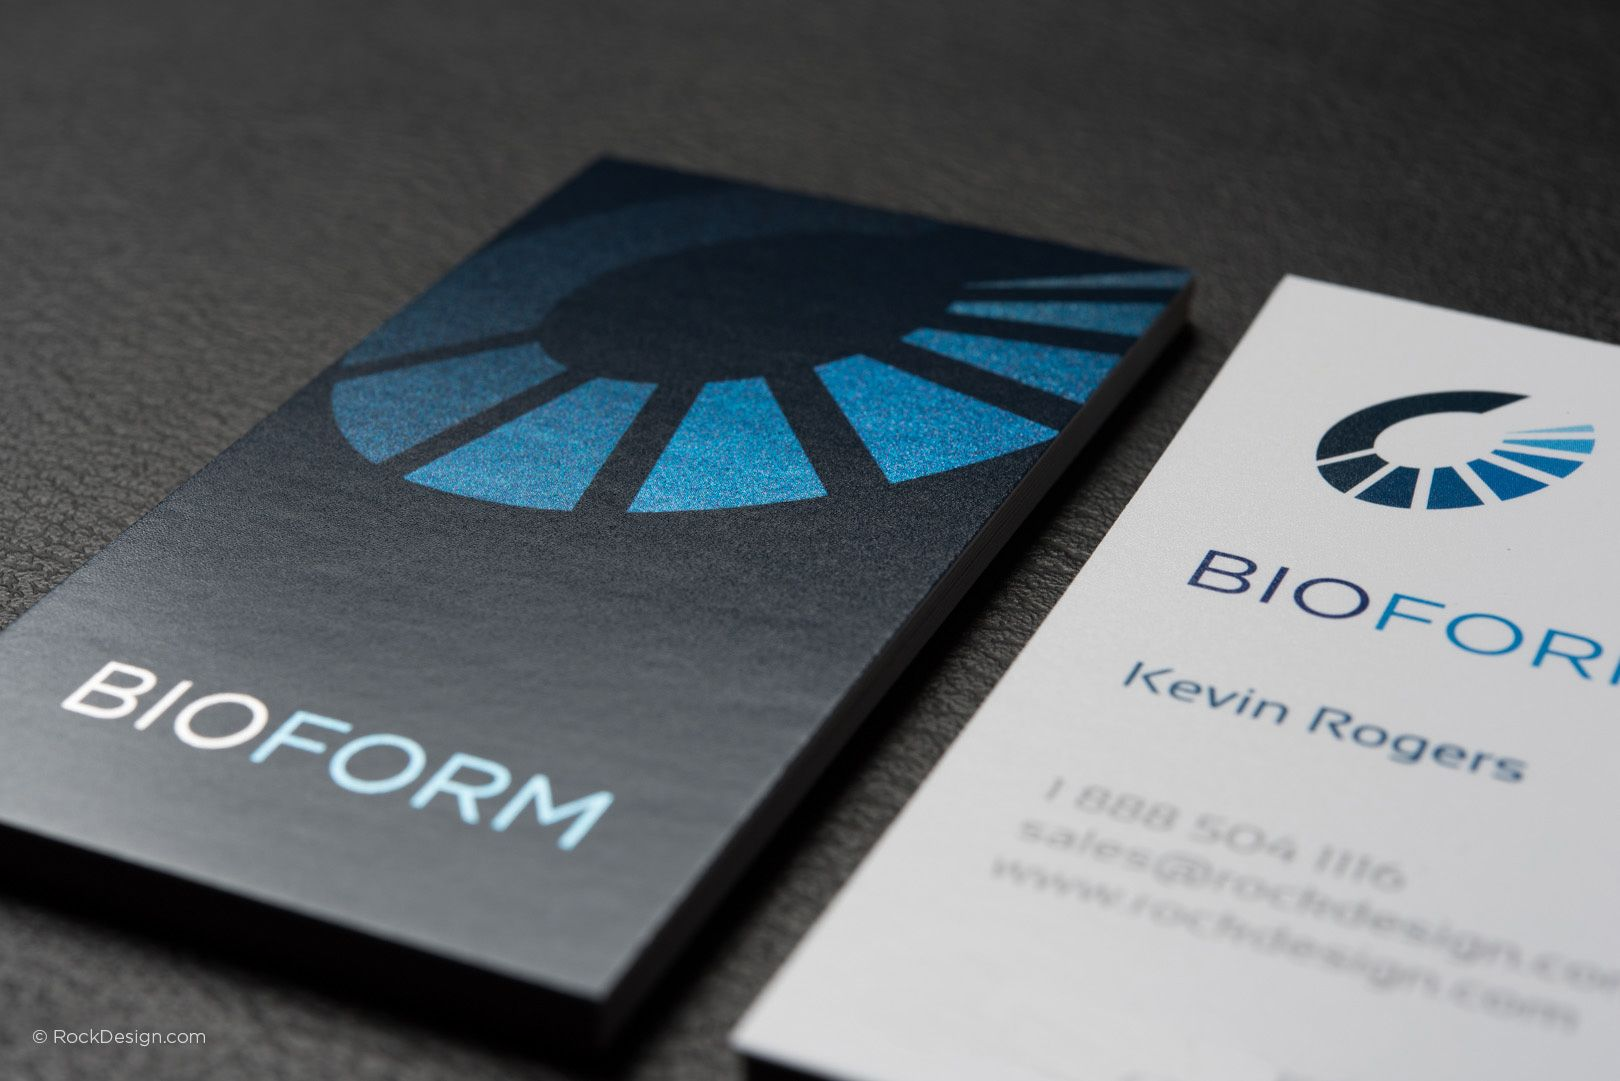 Diamond modern shiny look business card template - Bioform ...